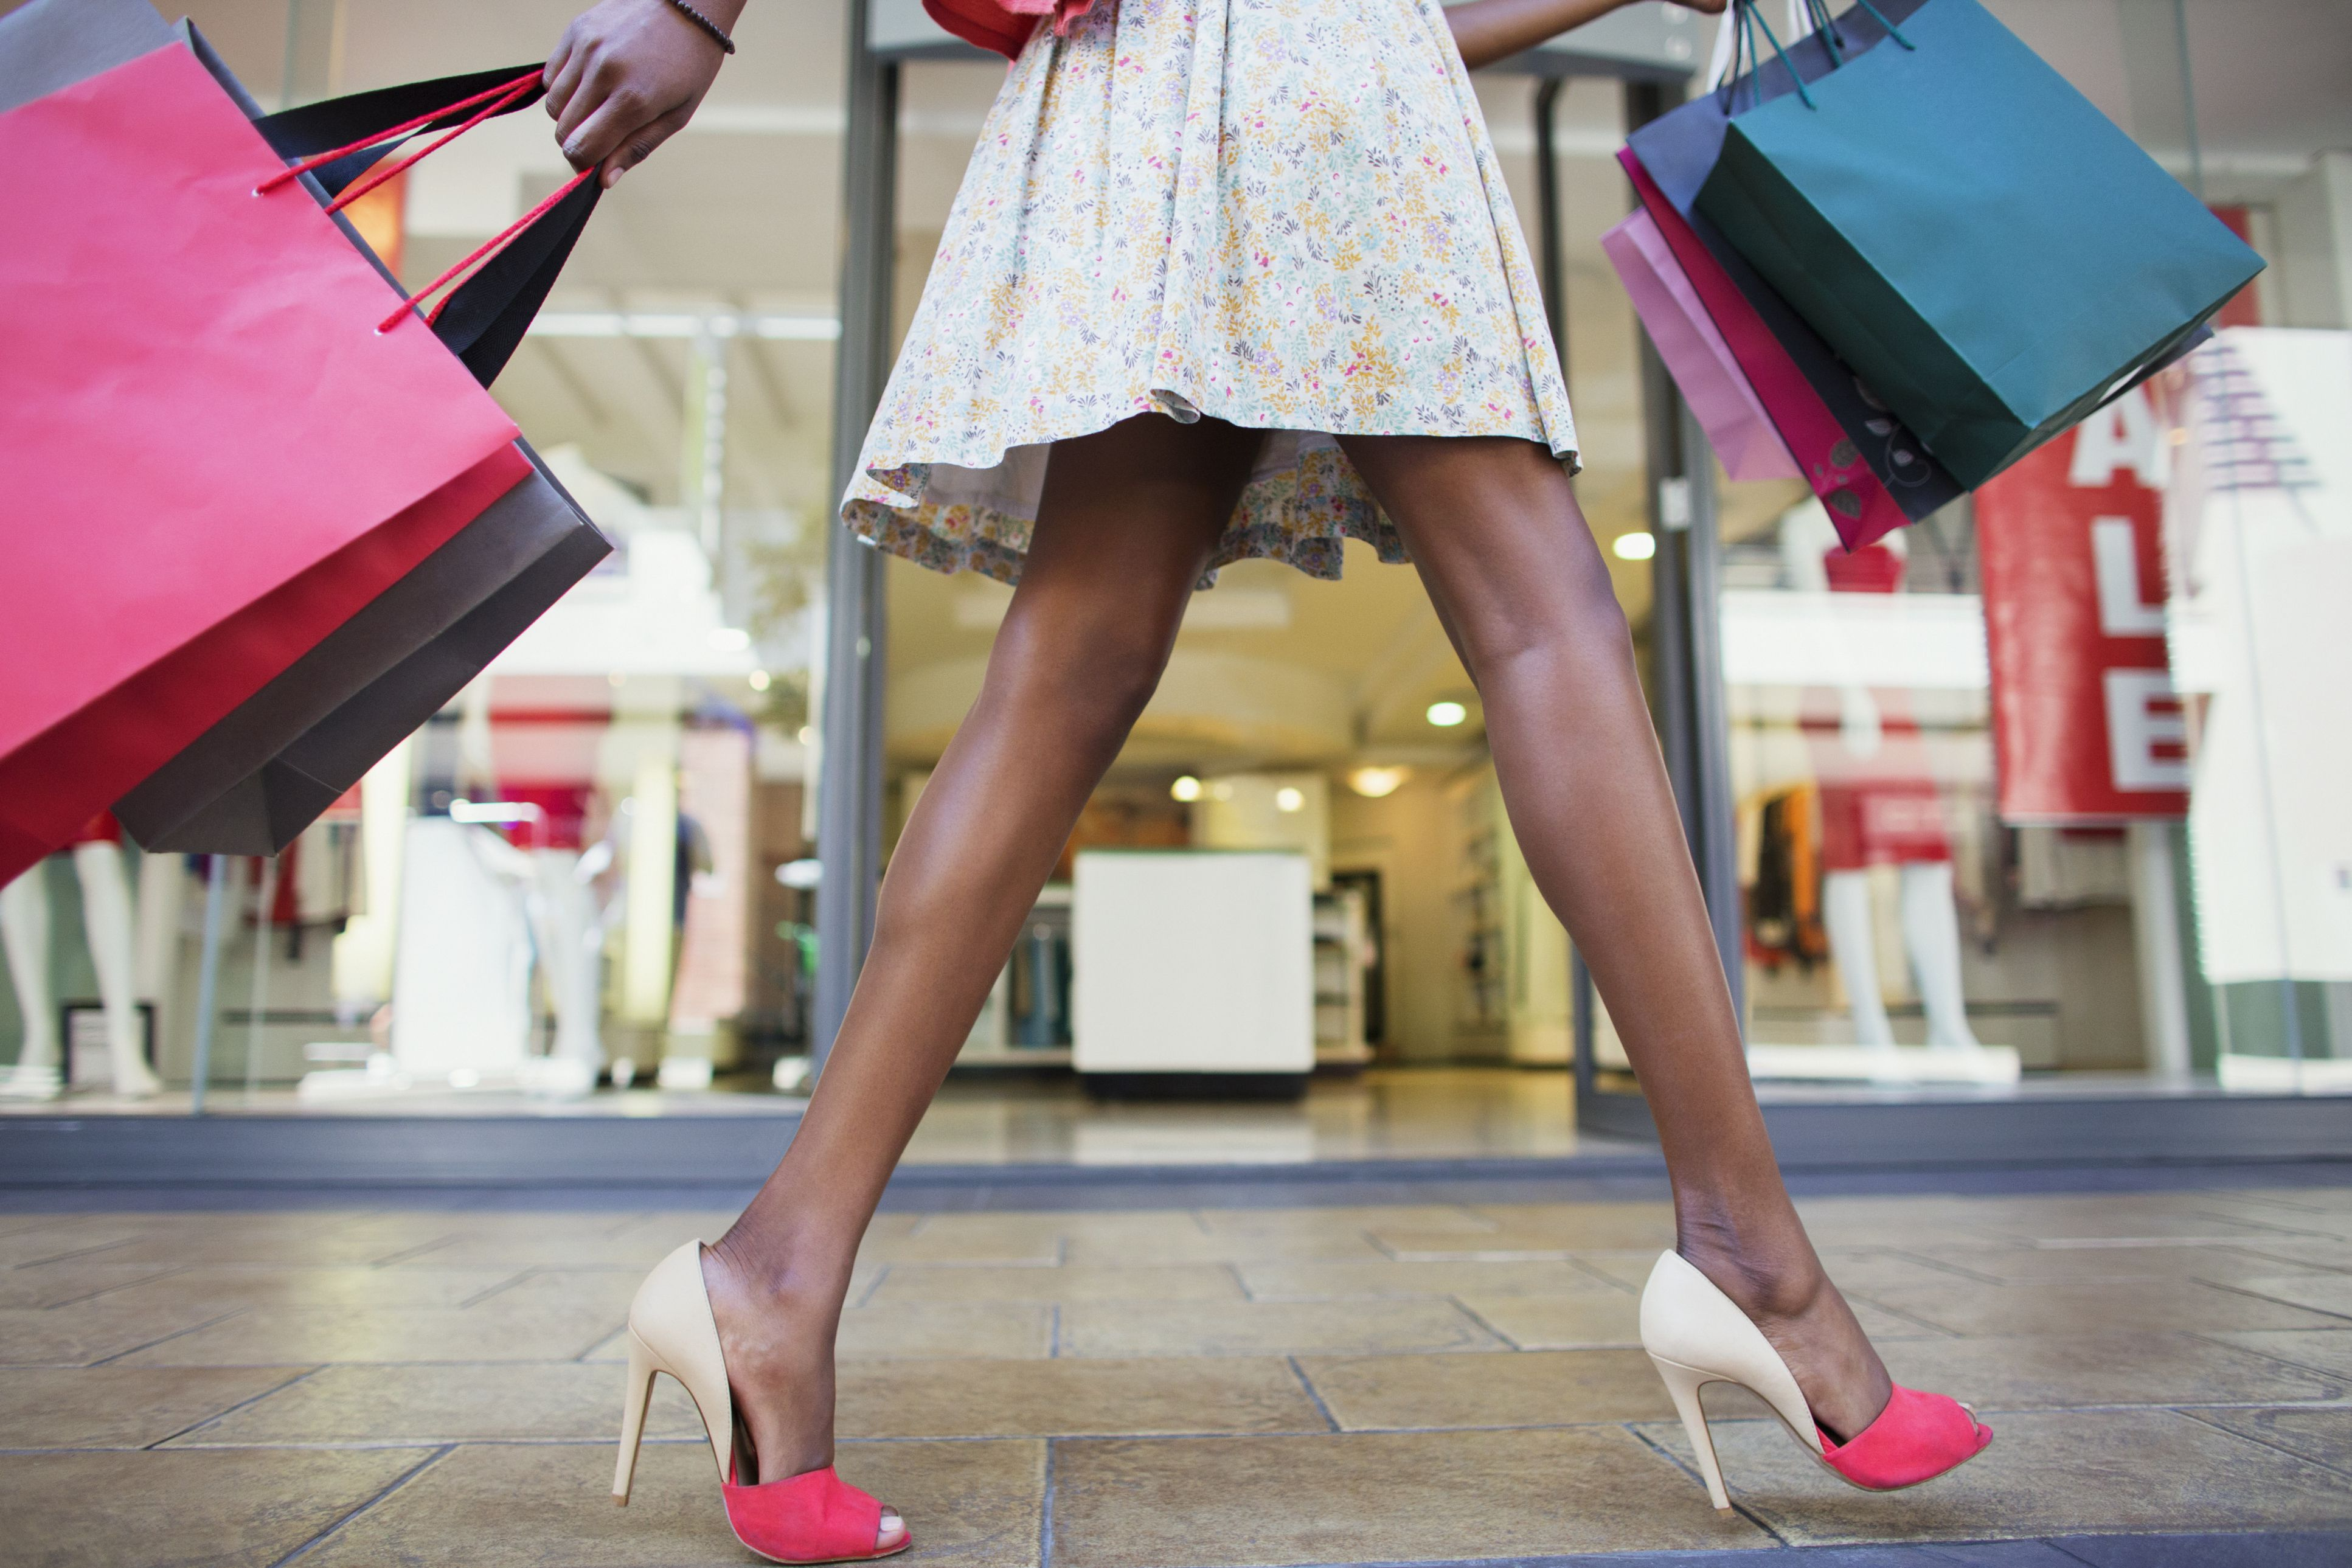 Woman carrying shopping bags in a shopping mall